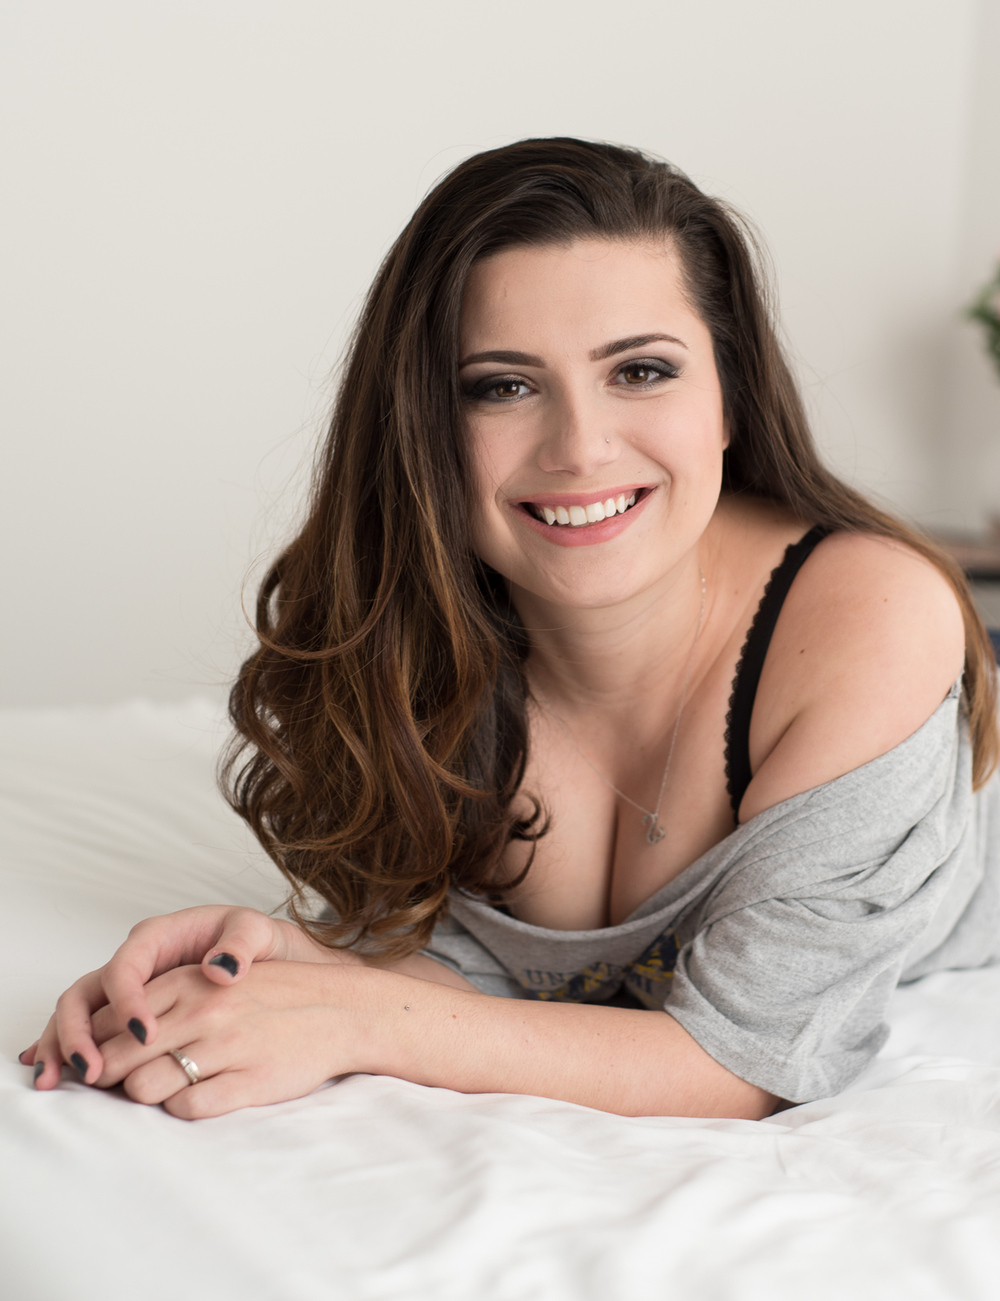 Natural and classy women's boudoir photography Clarksville TN